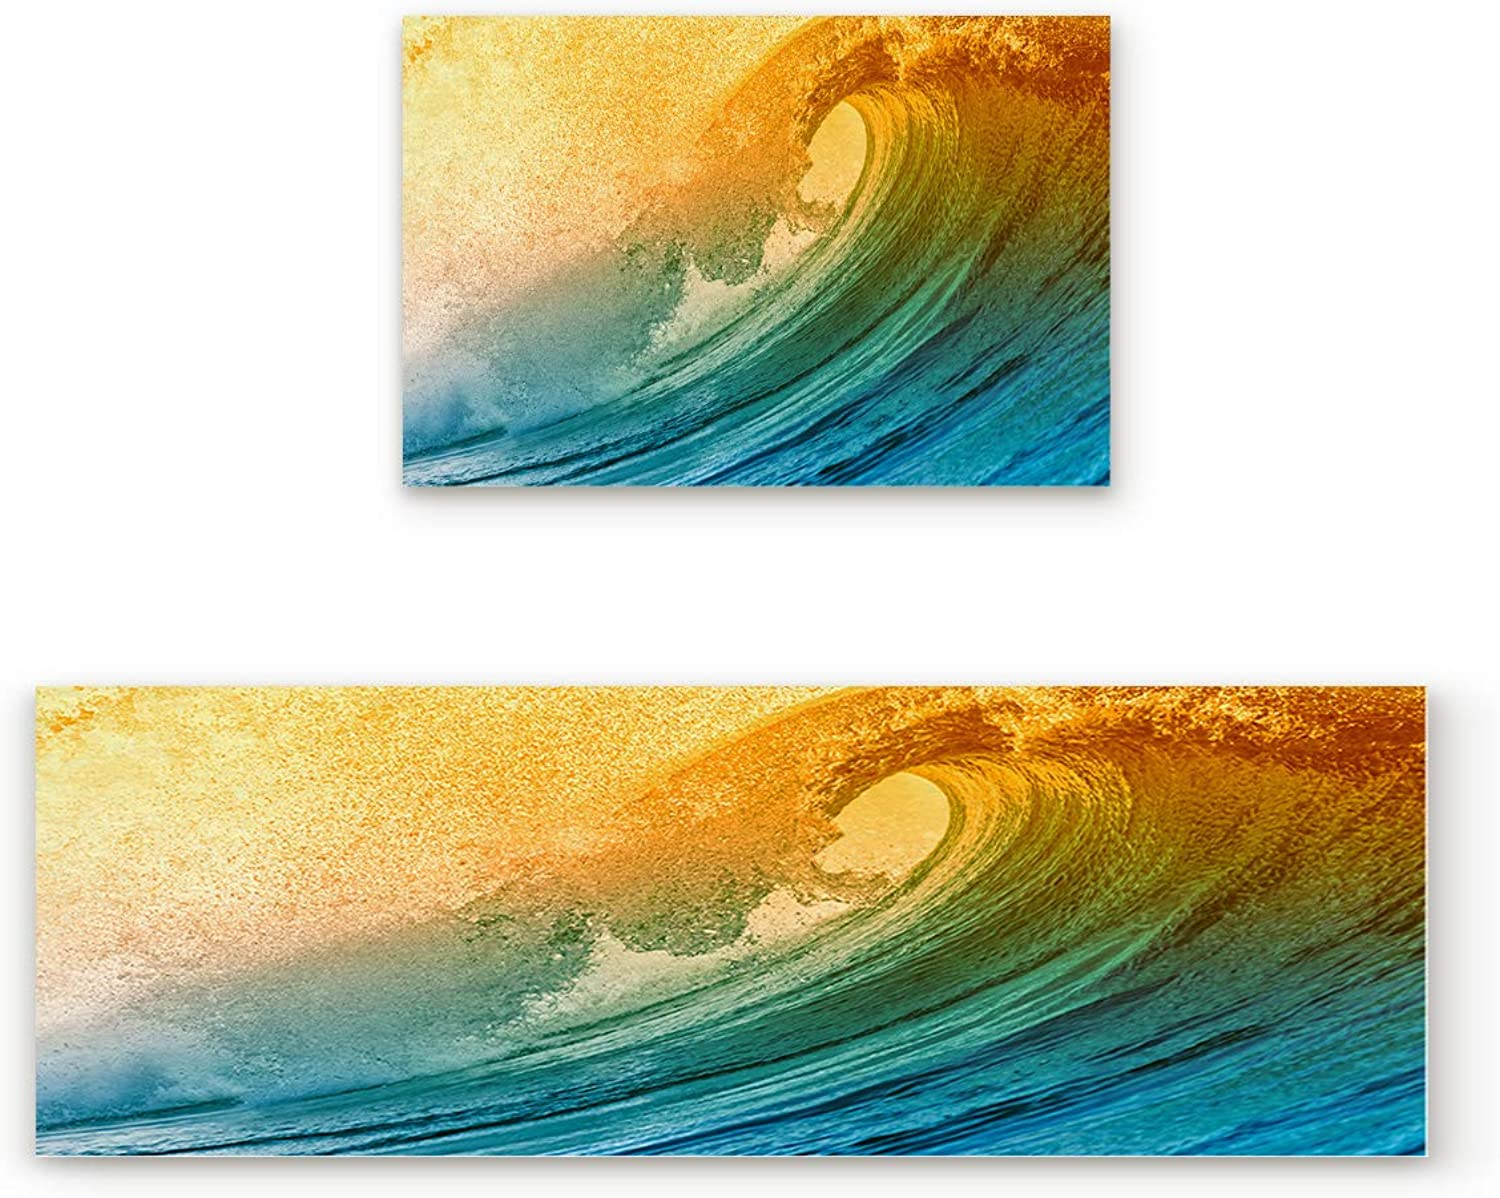 Aomike 2 Piece Non-Slip Kitchen Mat Rubber Backing Doormat Magnificent Roaring Ocean Wave Runner Rug Set Hallway Living Room Balcony Bathroom Carpet Sets (23.6  x 35.4 +23.6  x 70.9 )